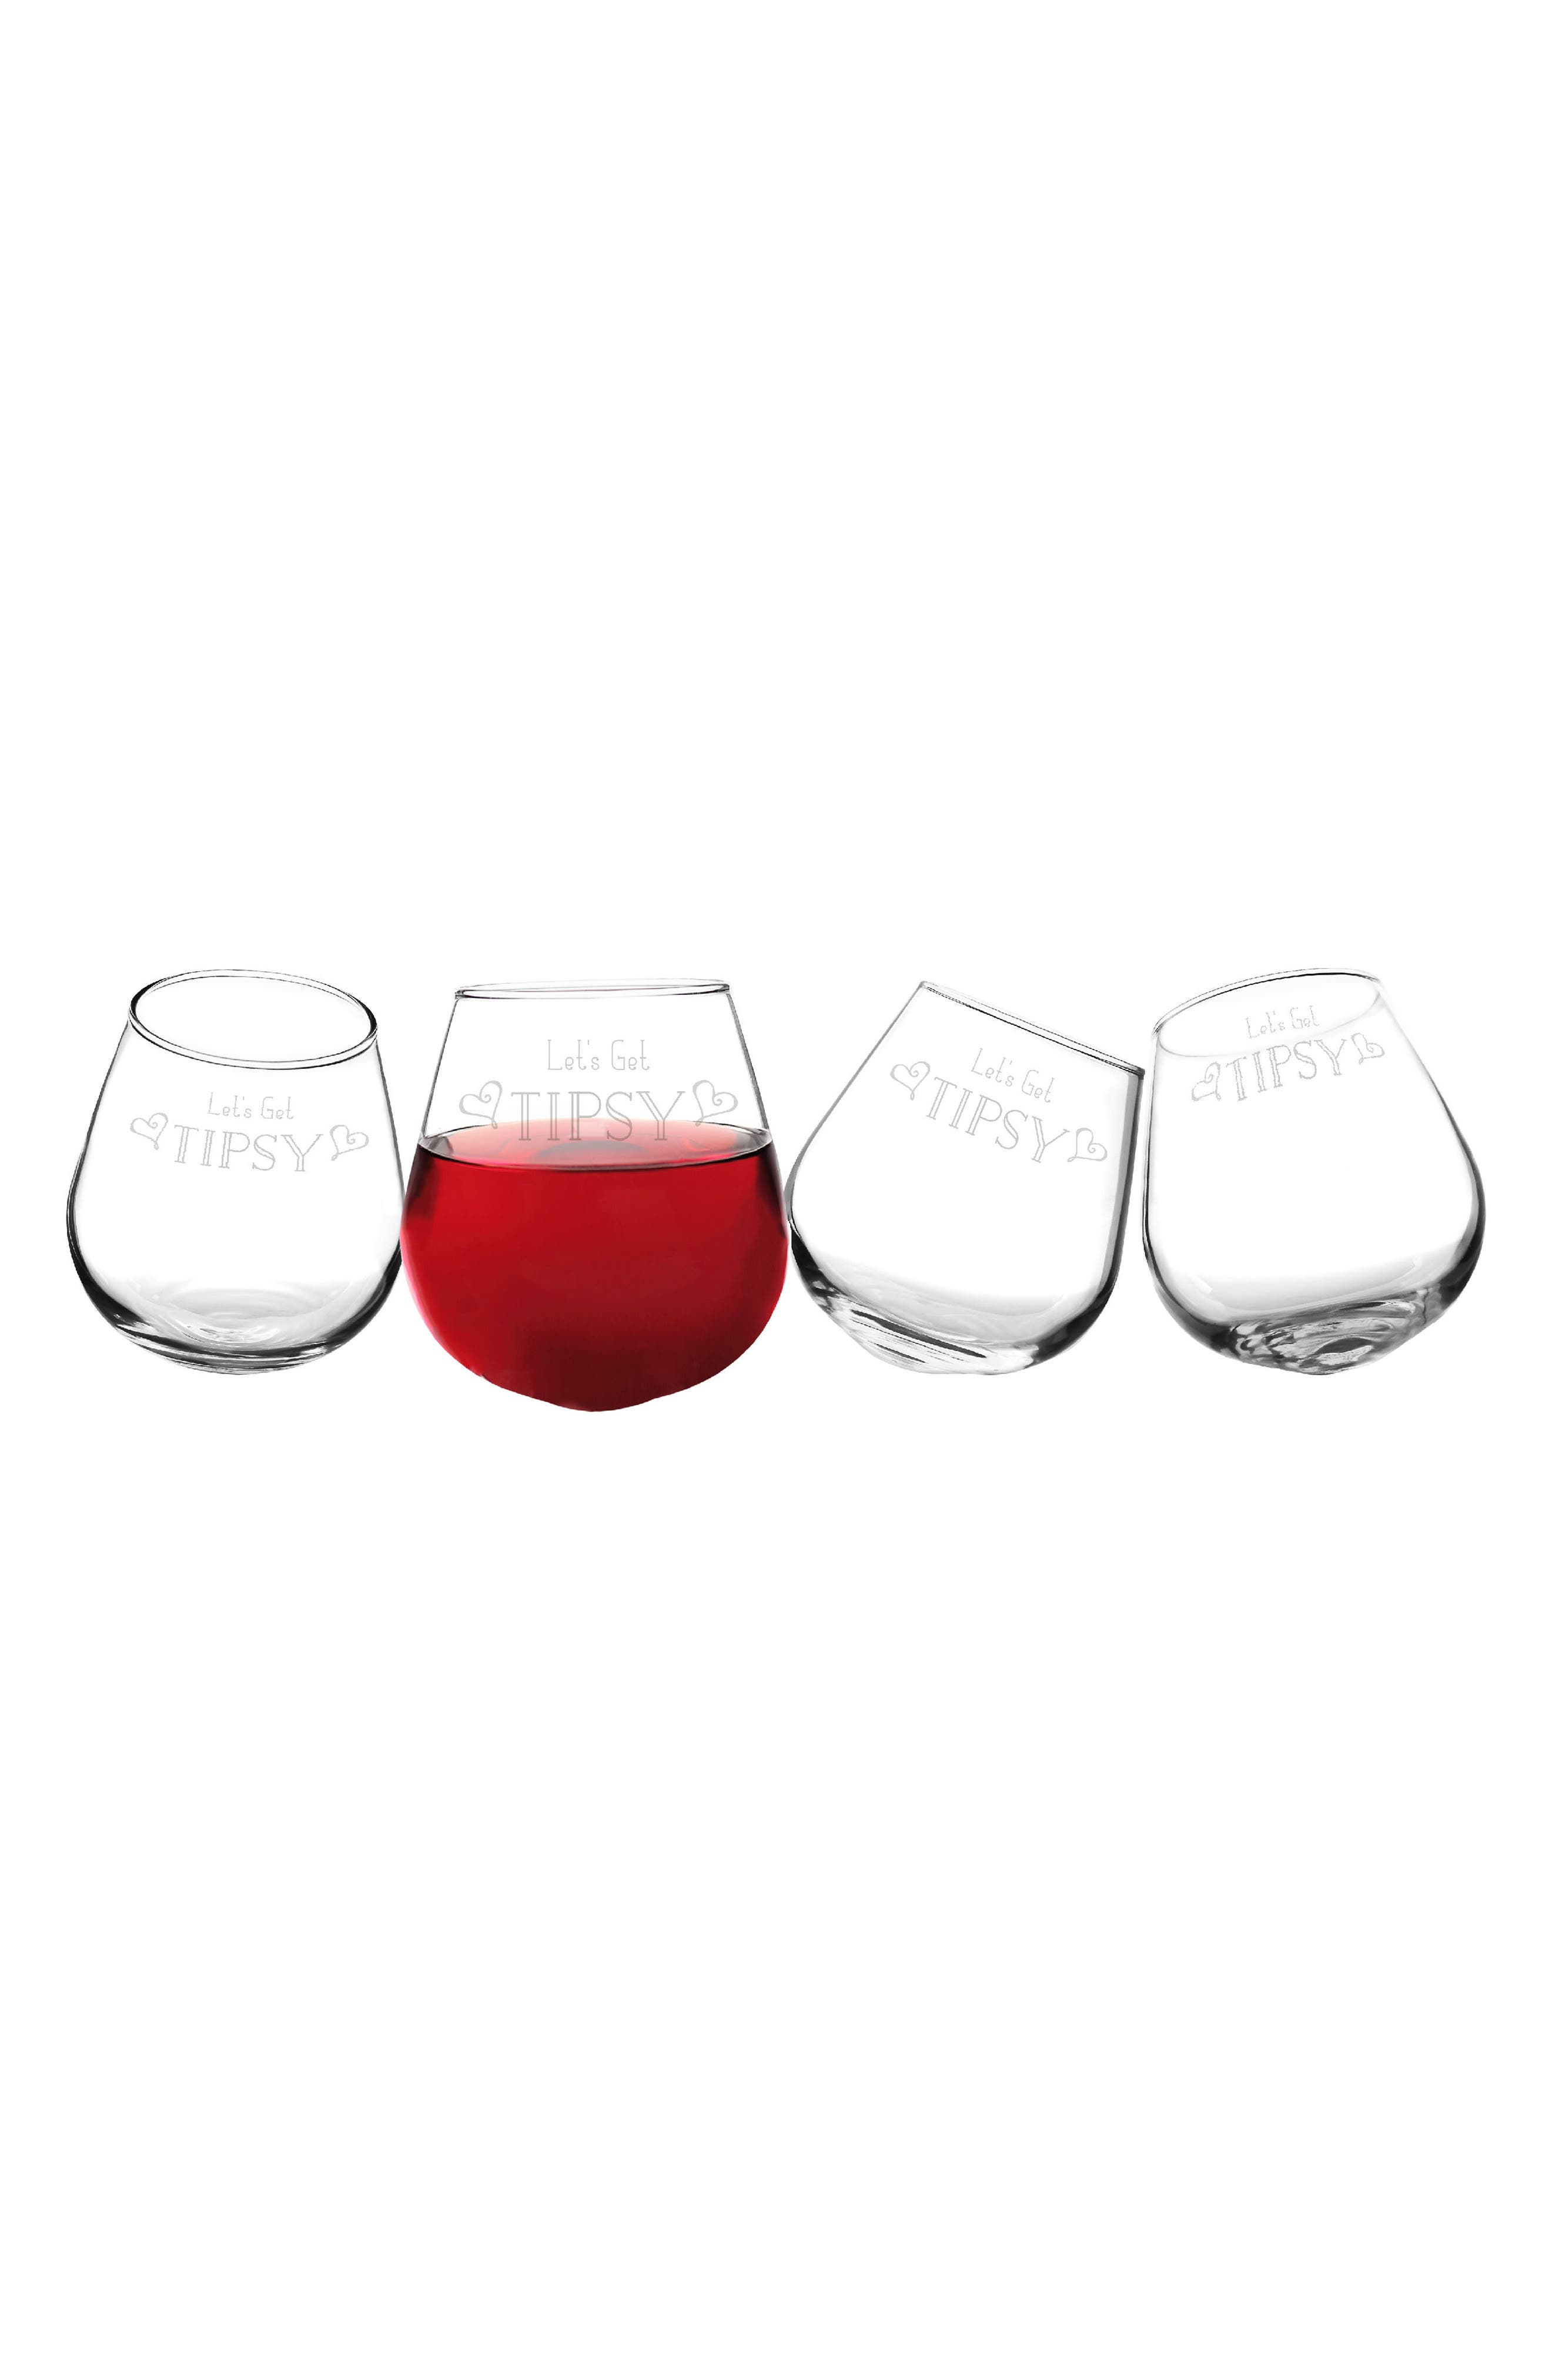 Let's Get Tipsy Etched Wine Glasses Set of 4,                             Main thumbnail 1, color,                             GET TIPSY